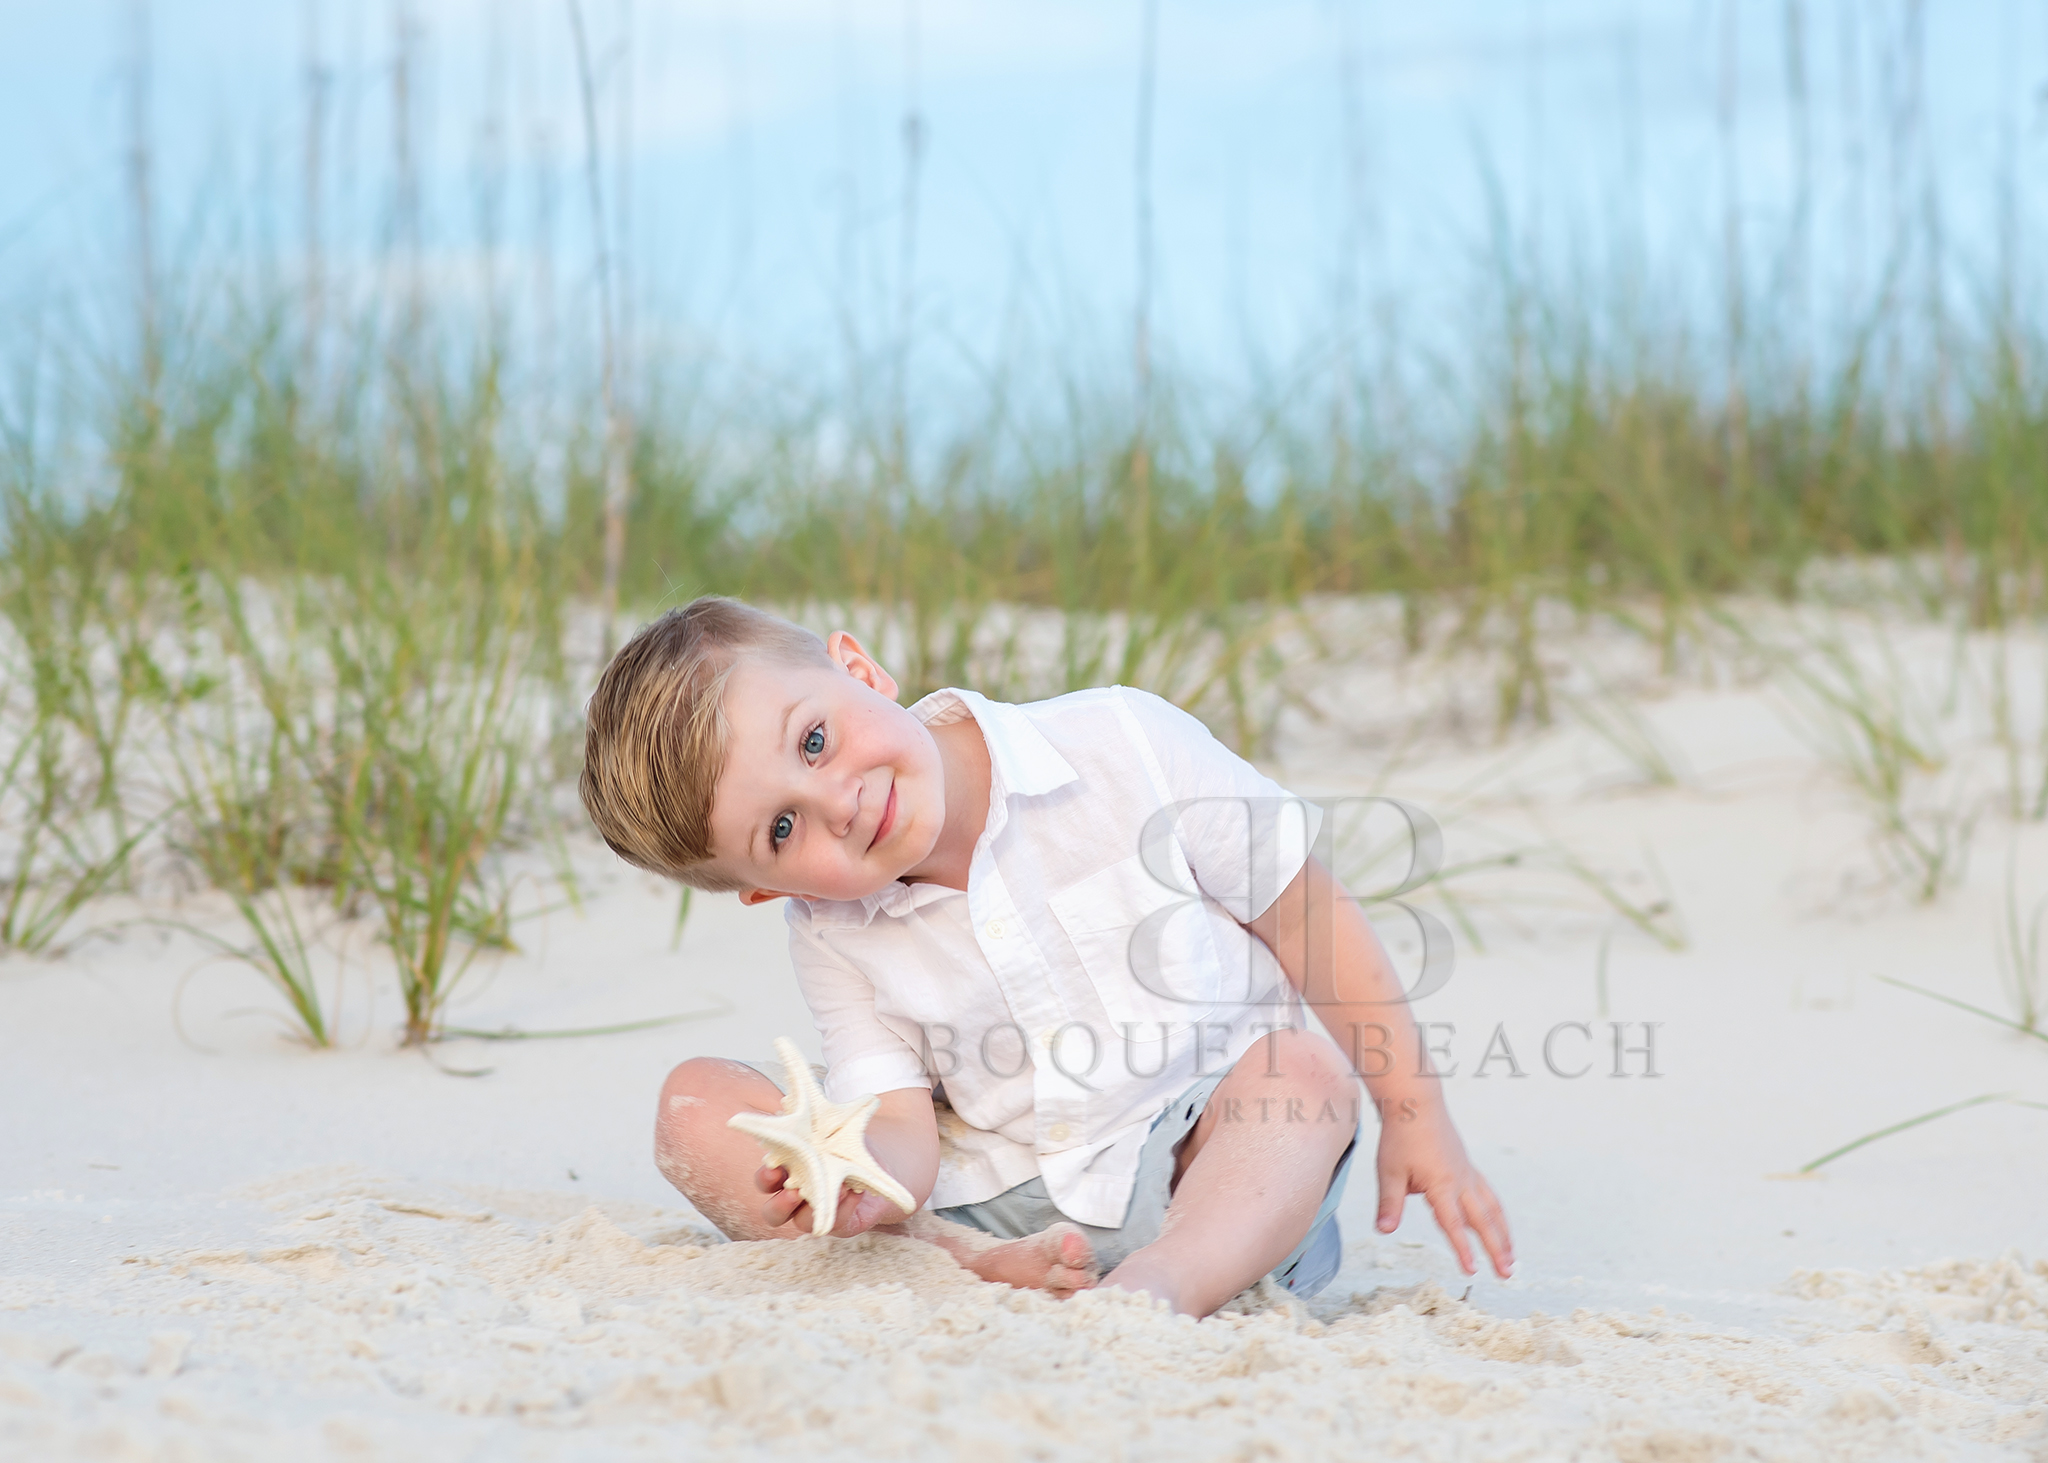 3 year old beach pictures in Orange Beach Alabama